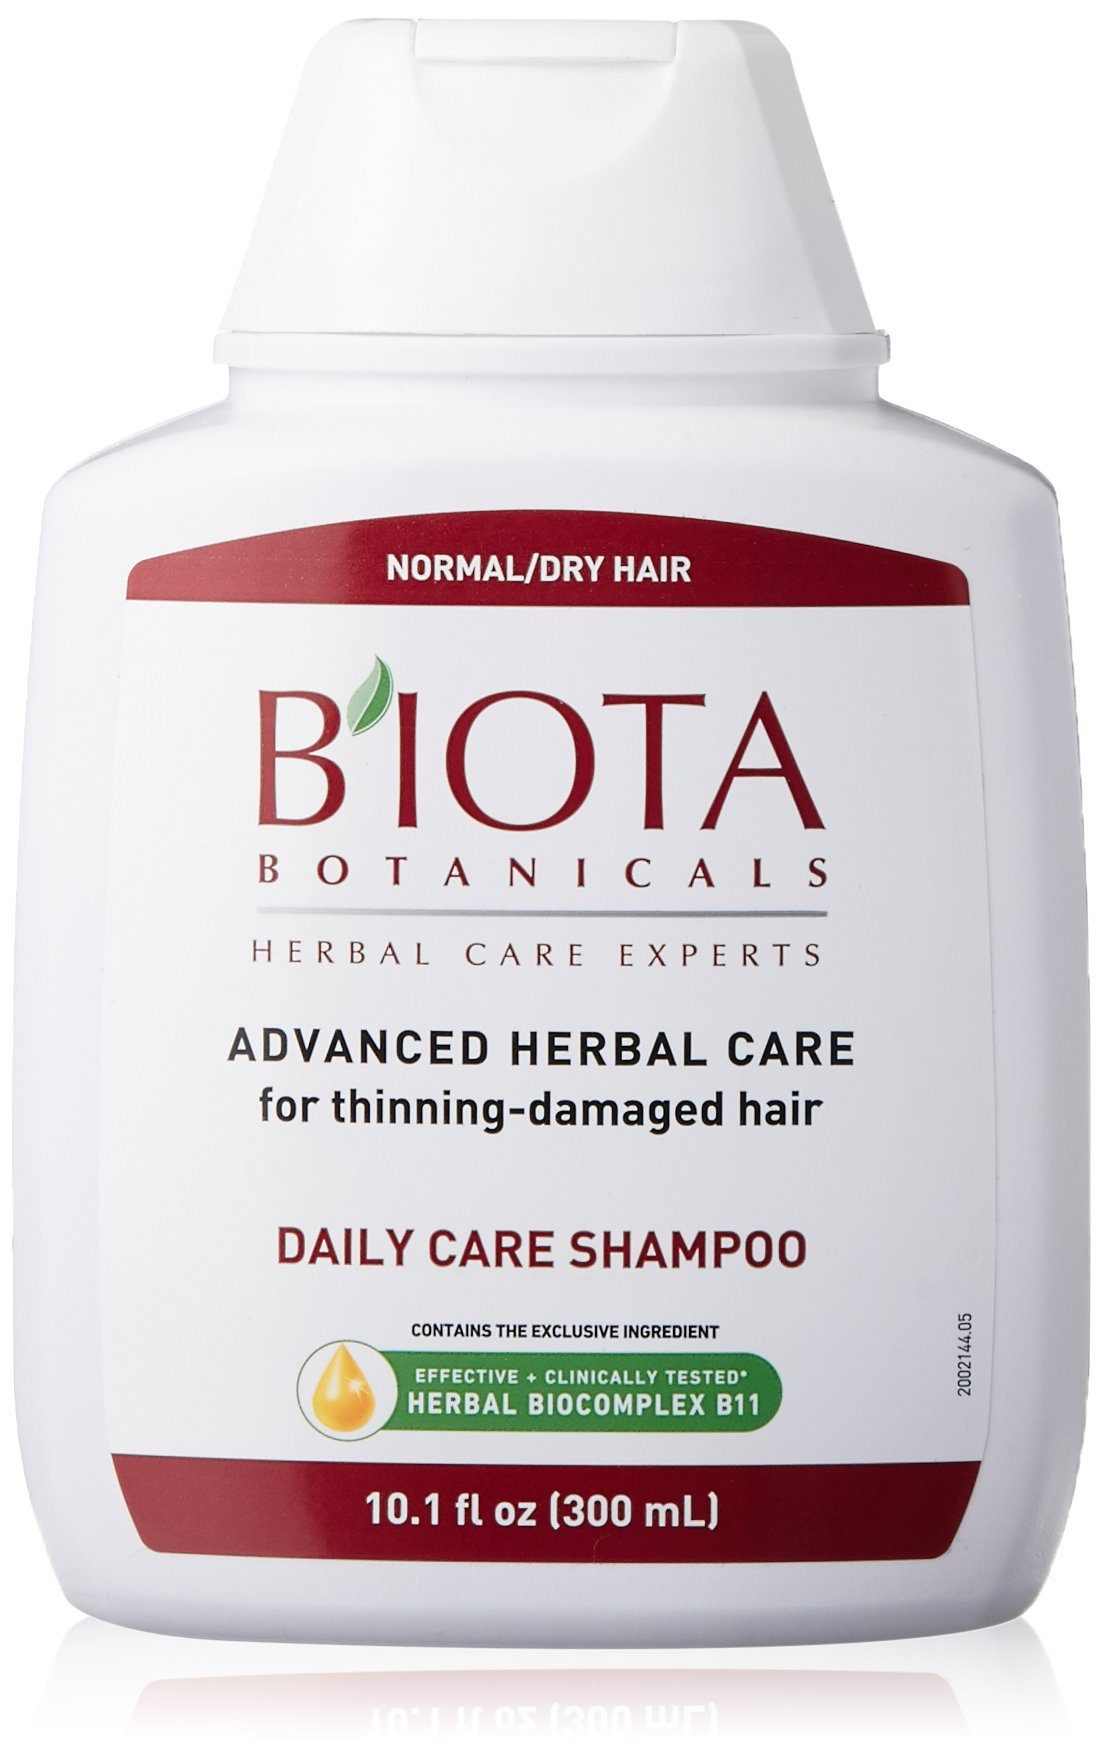 Biota Botanicals Advanced Herbal Care Leave In Serum Sensatia Hydrating Body Set 2 X 300 Ml Experts Daily Shampoo For Normal Dry Thinning Hair